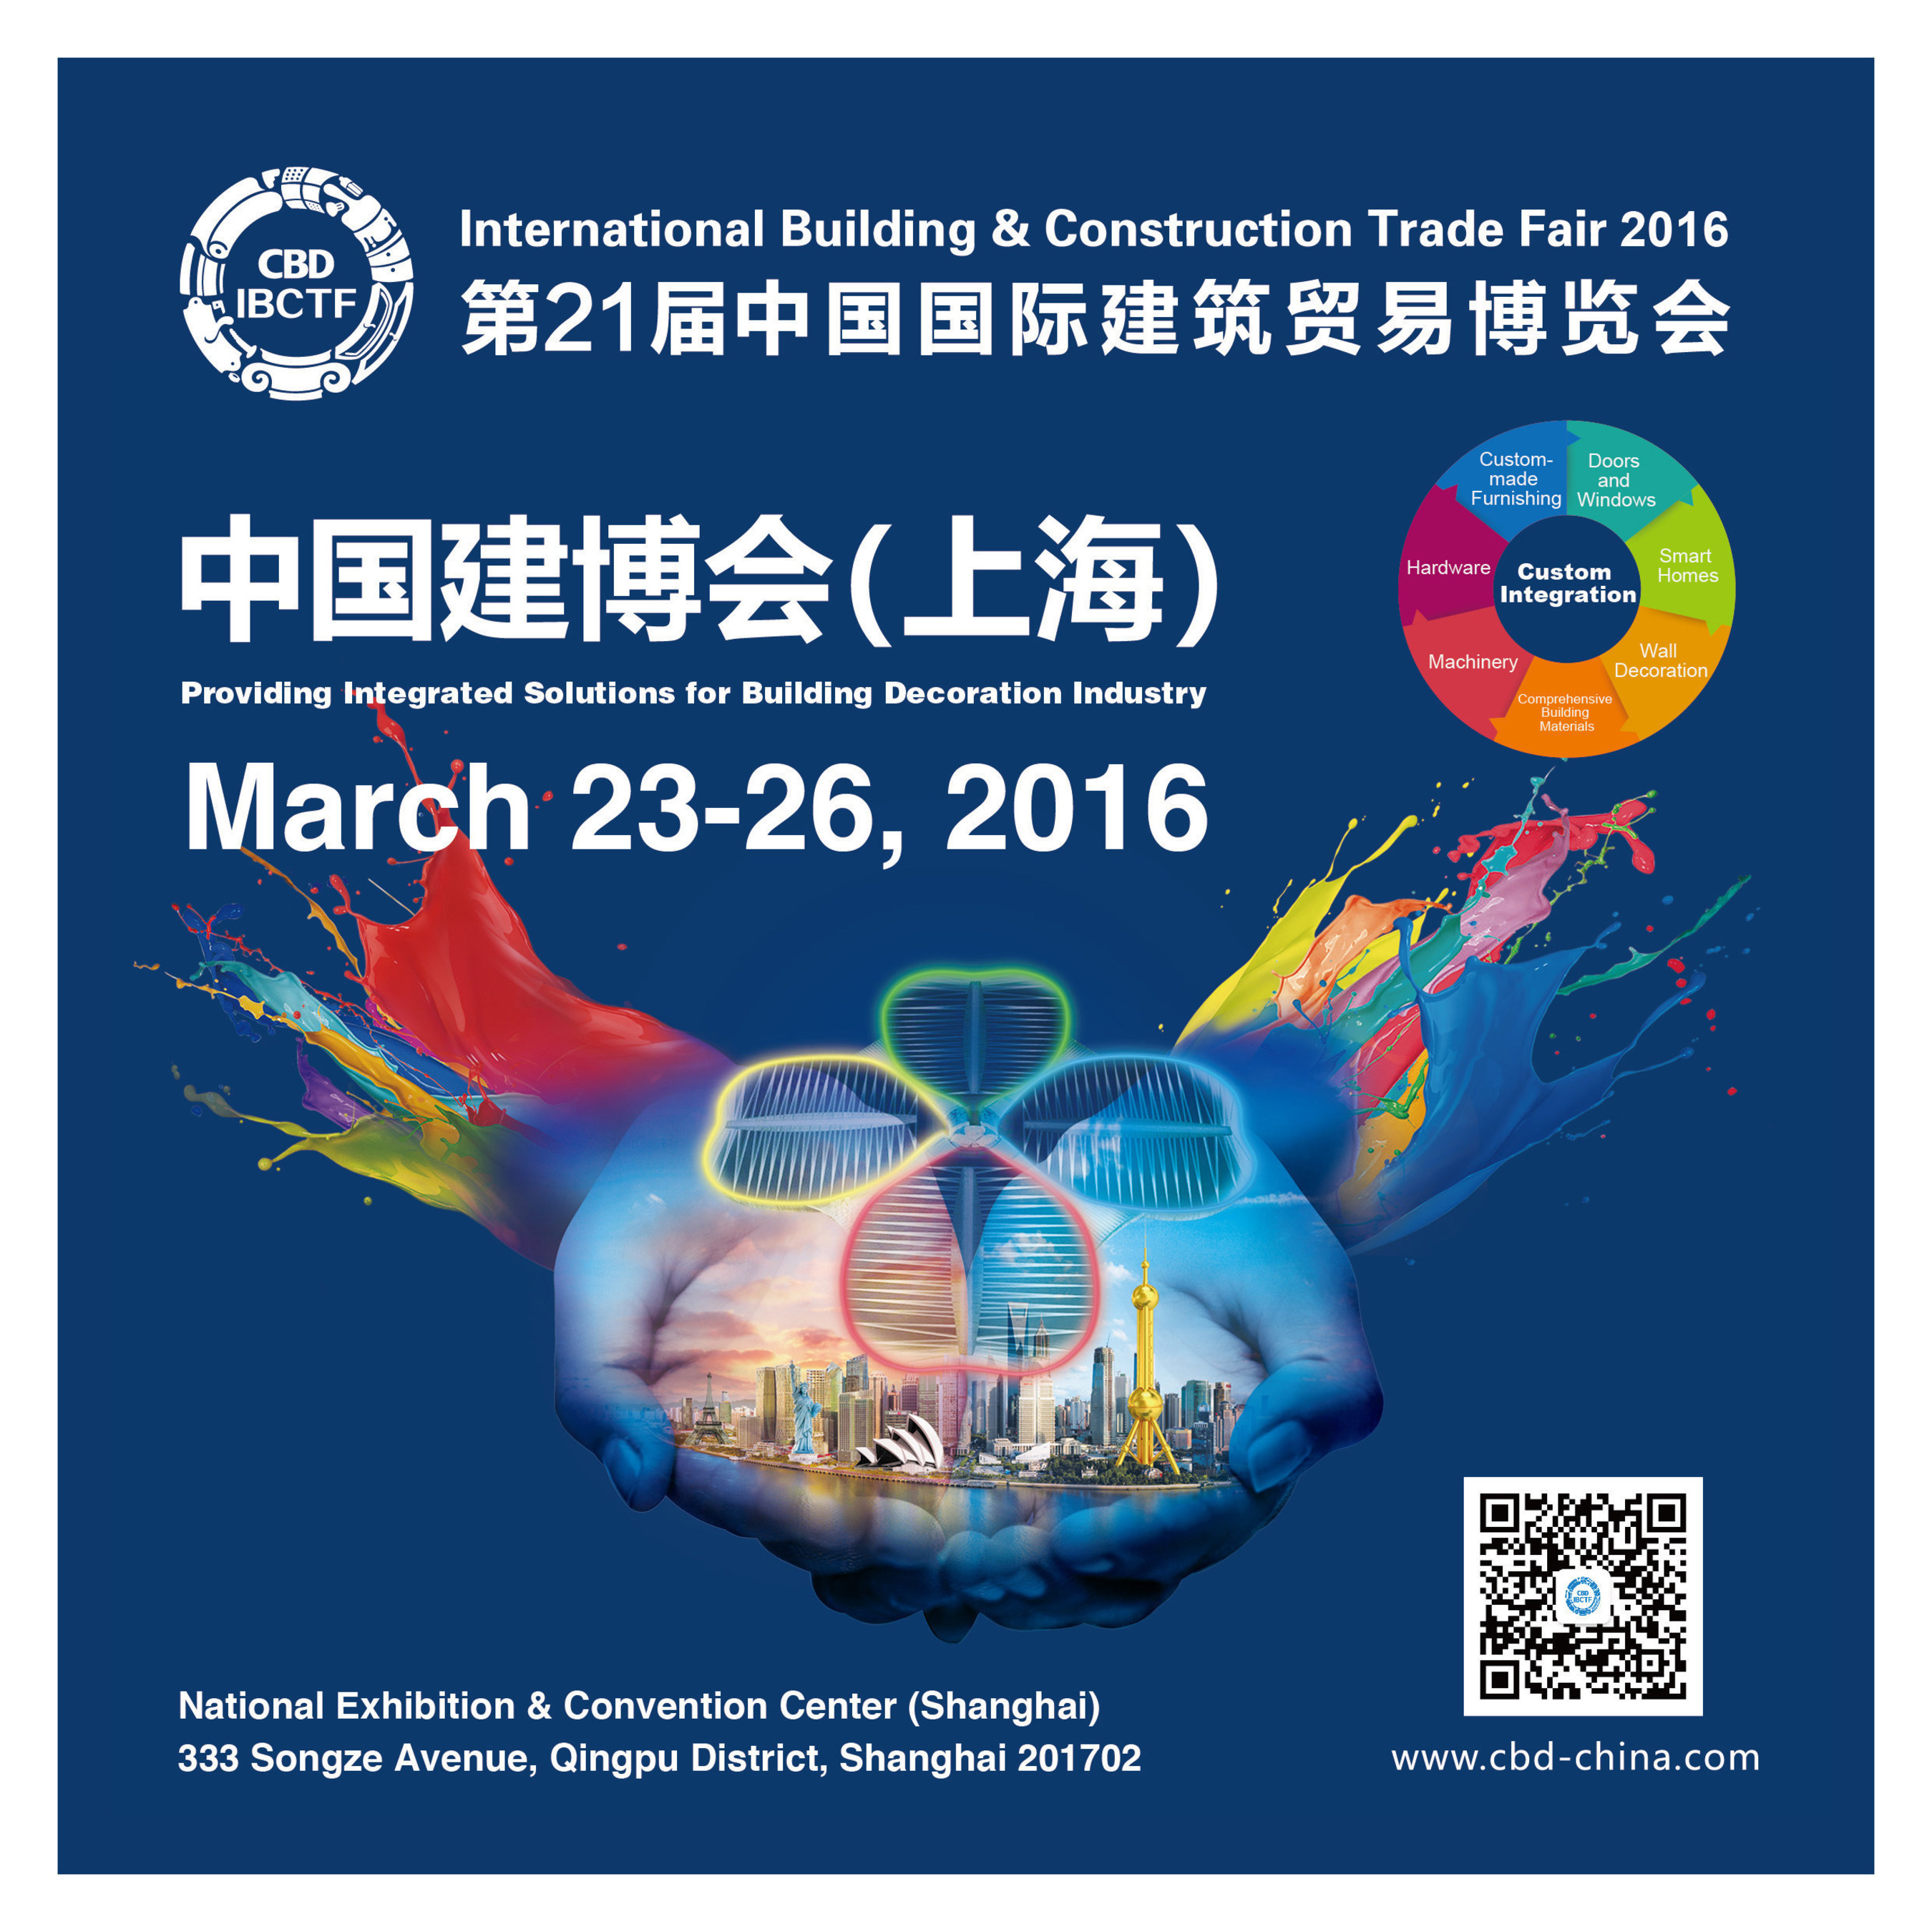 The 2016 International Building & Construction Trade Fair, or CBD-IBCTF (Shanghai), will open on March 23, 2016  ...